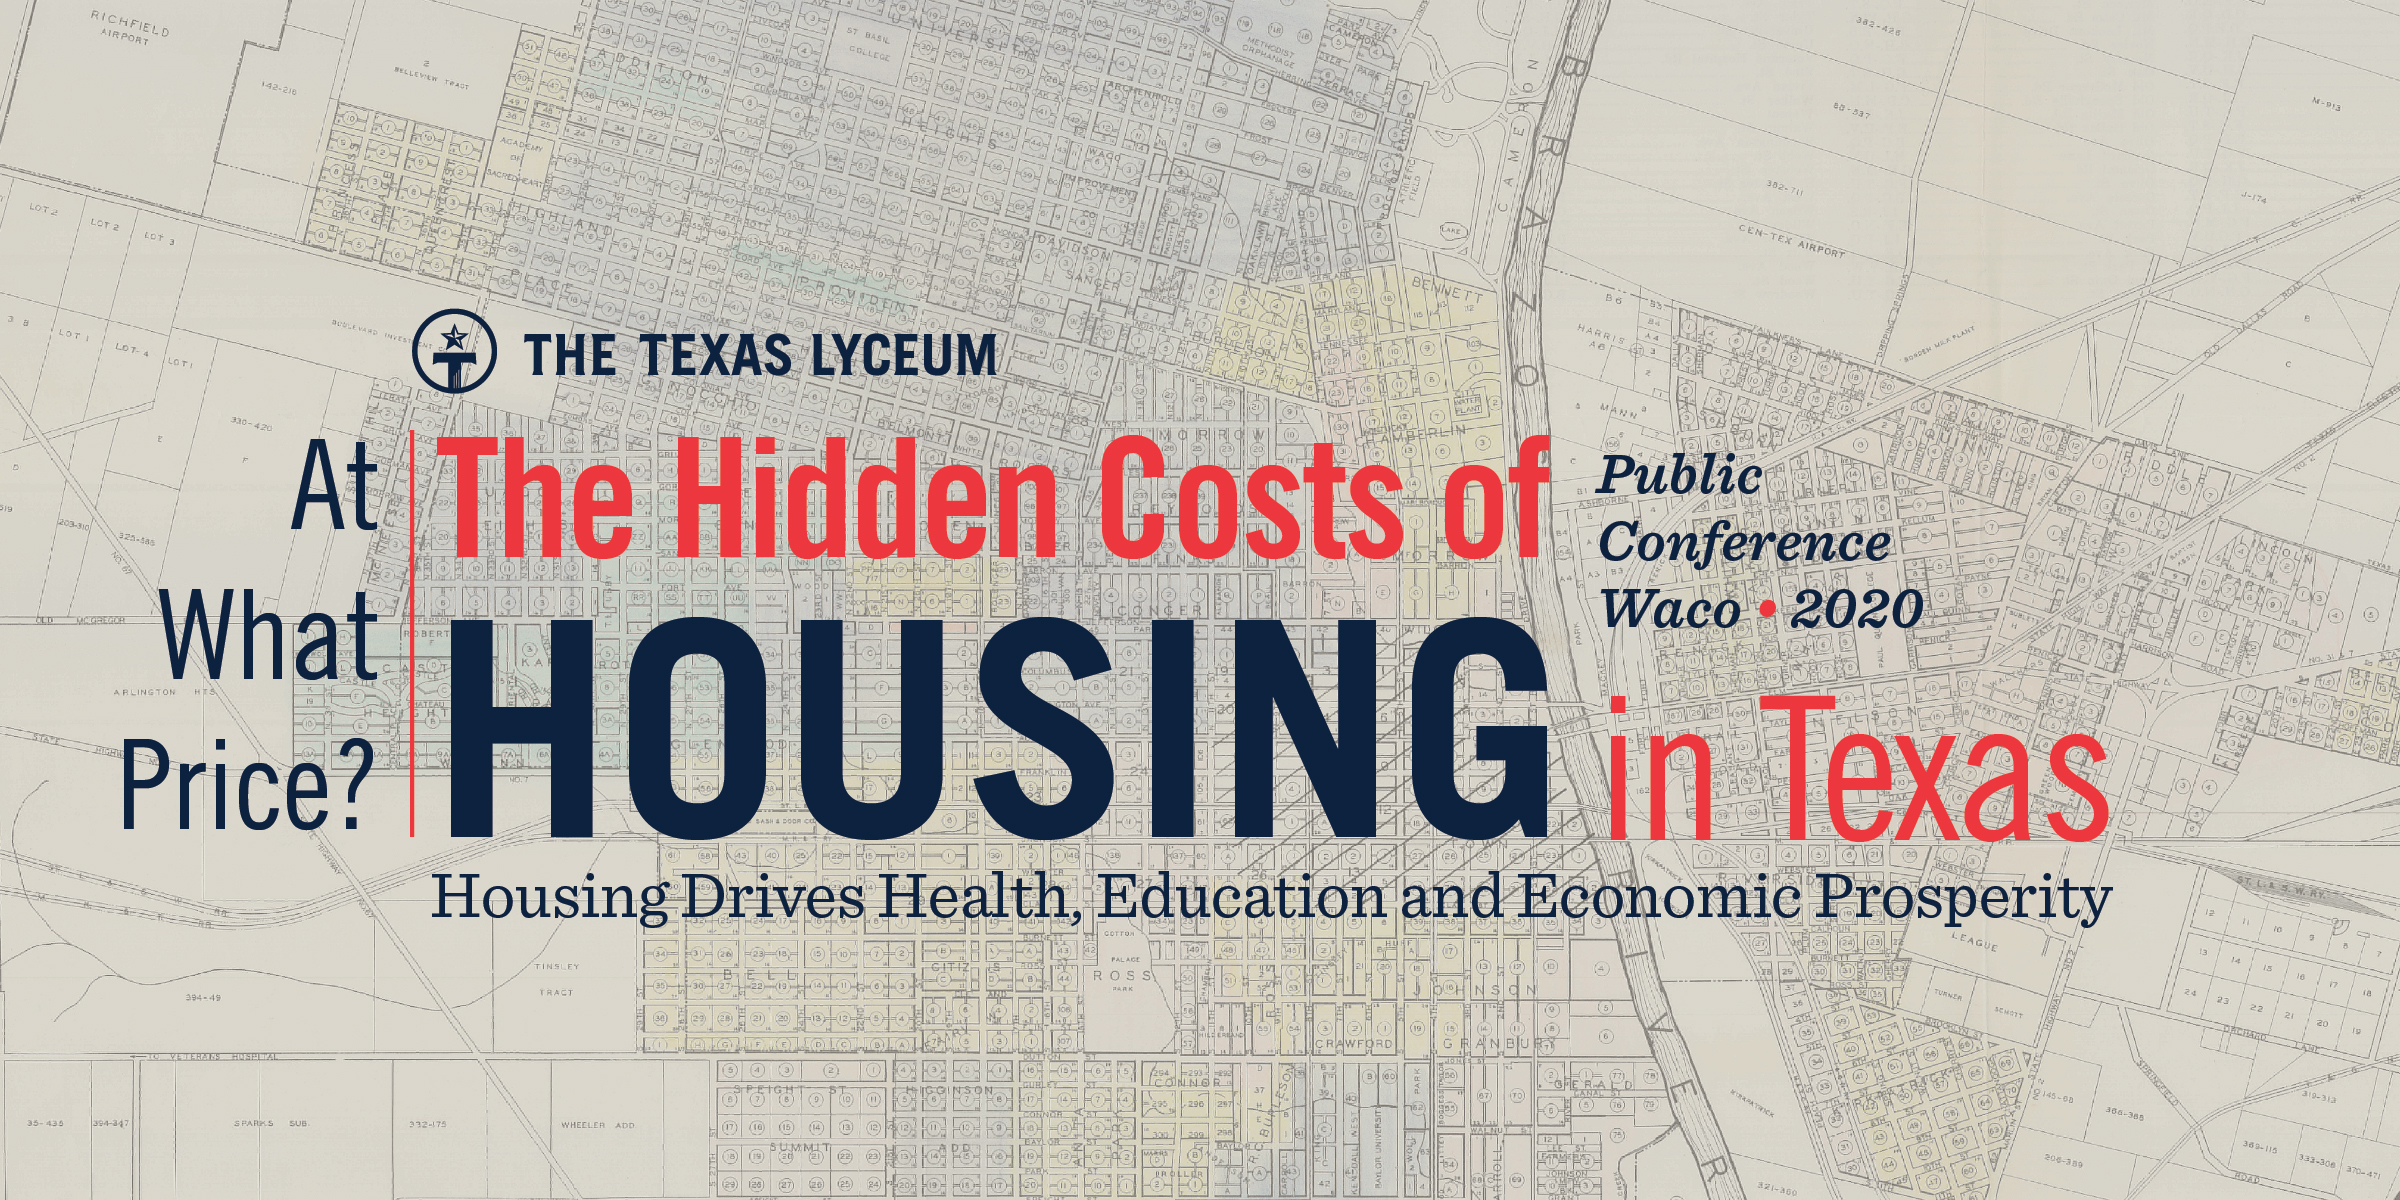 Map image with logo: At what price? The Hidden Costs of Housing in Texas